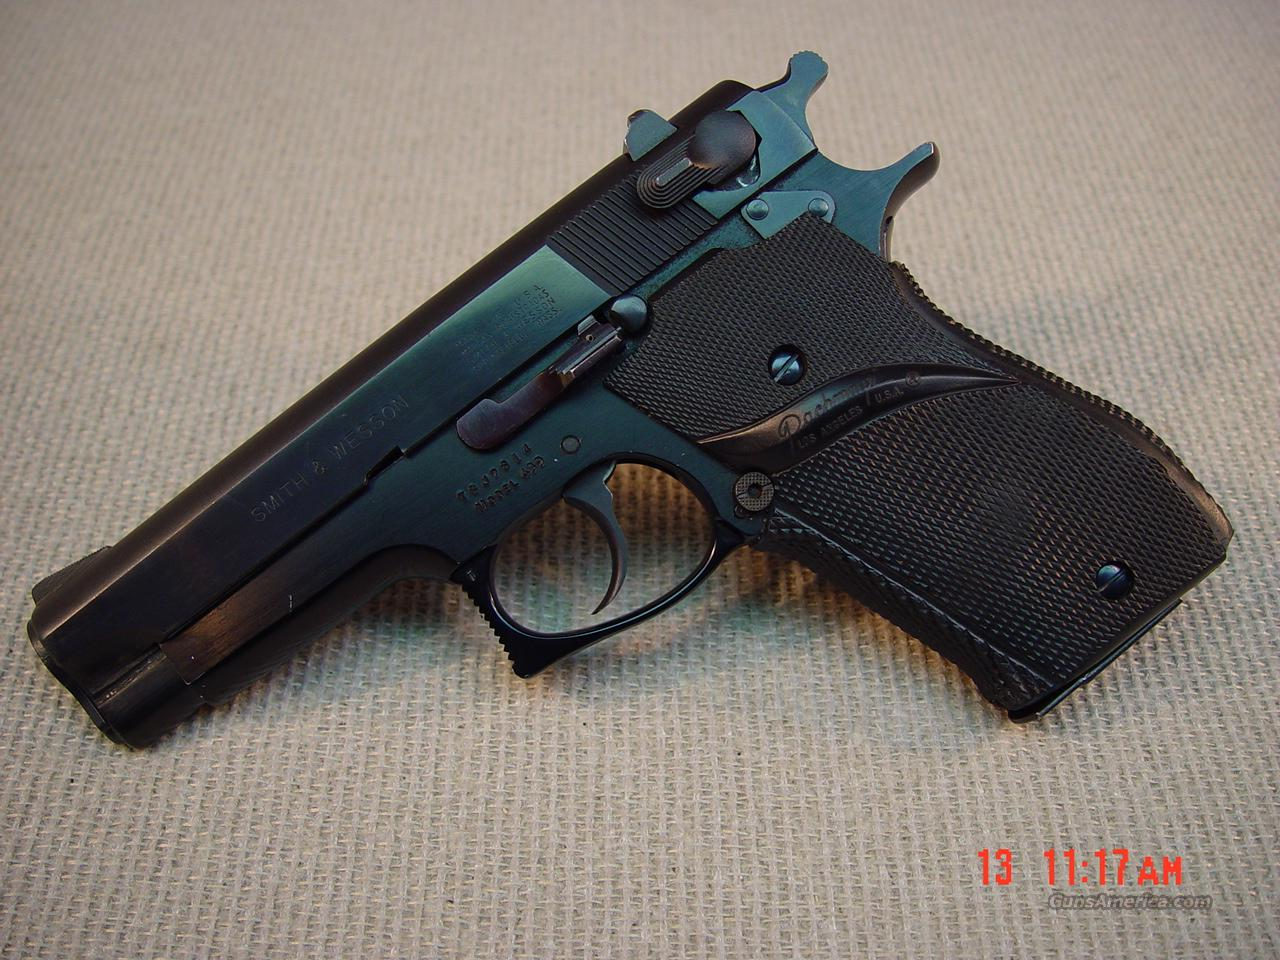 SMITH & WESSON Model 439 9mm  Guns > Pistols > Smith & Wesson Pistols - Autos > Steel Frame